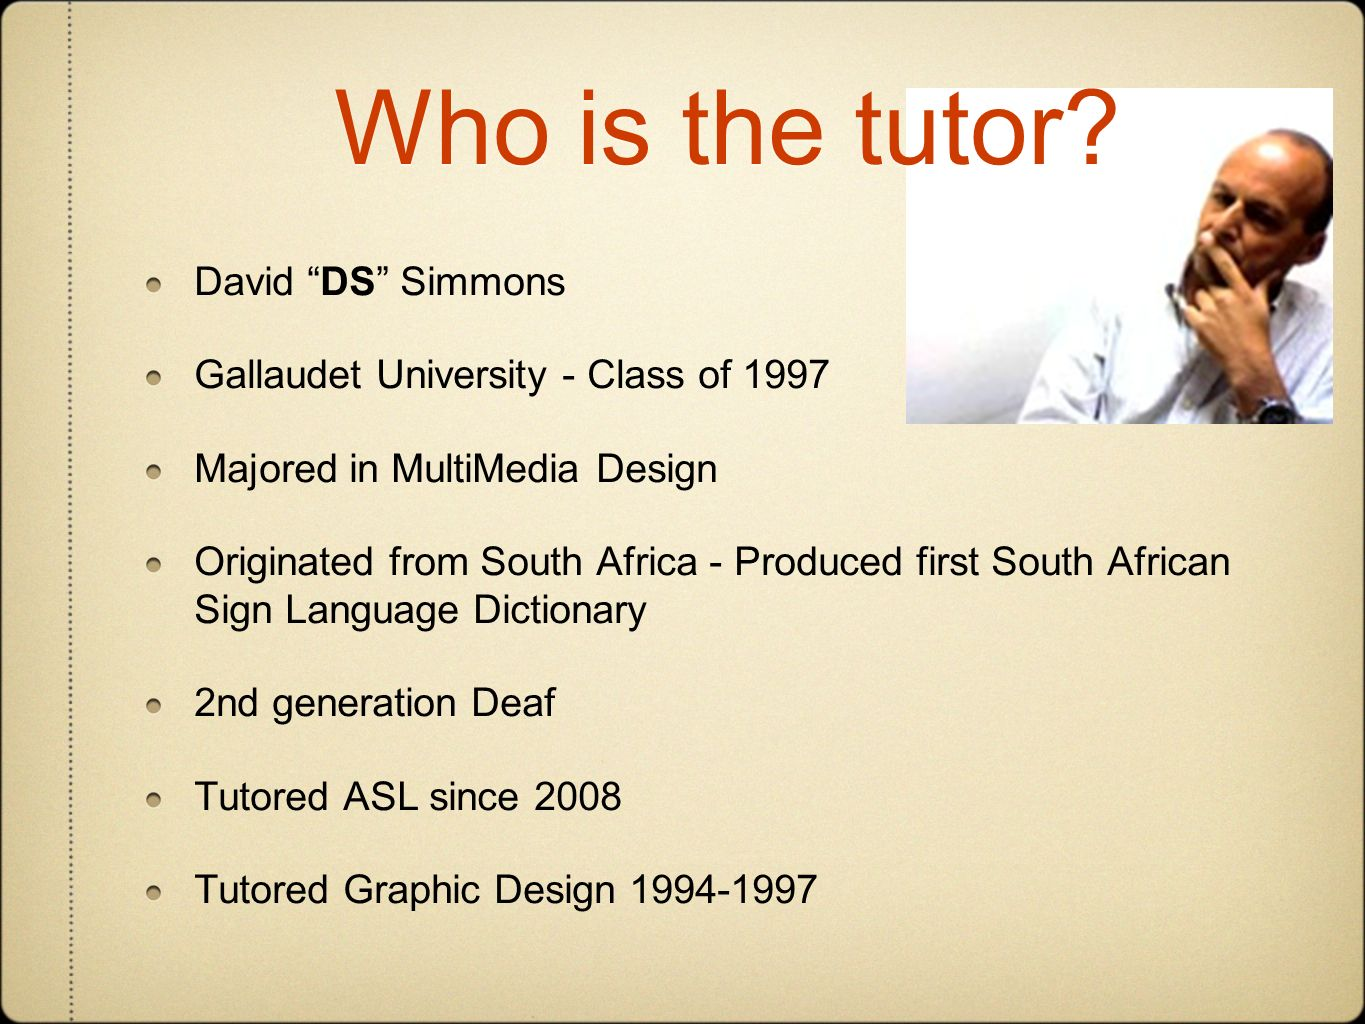 David DS Simmons Gallaudet University - Class of 1997 Majored in MultiMedia Design Originated from South Africa - Produced first South African Sign Language Dictionary 2nd generation Deaf Tutored ASL since 2008 Tutored Graphic Design 1994-1997 Who is the tutor